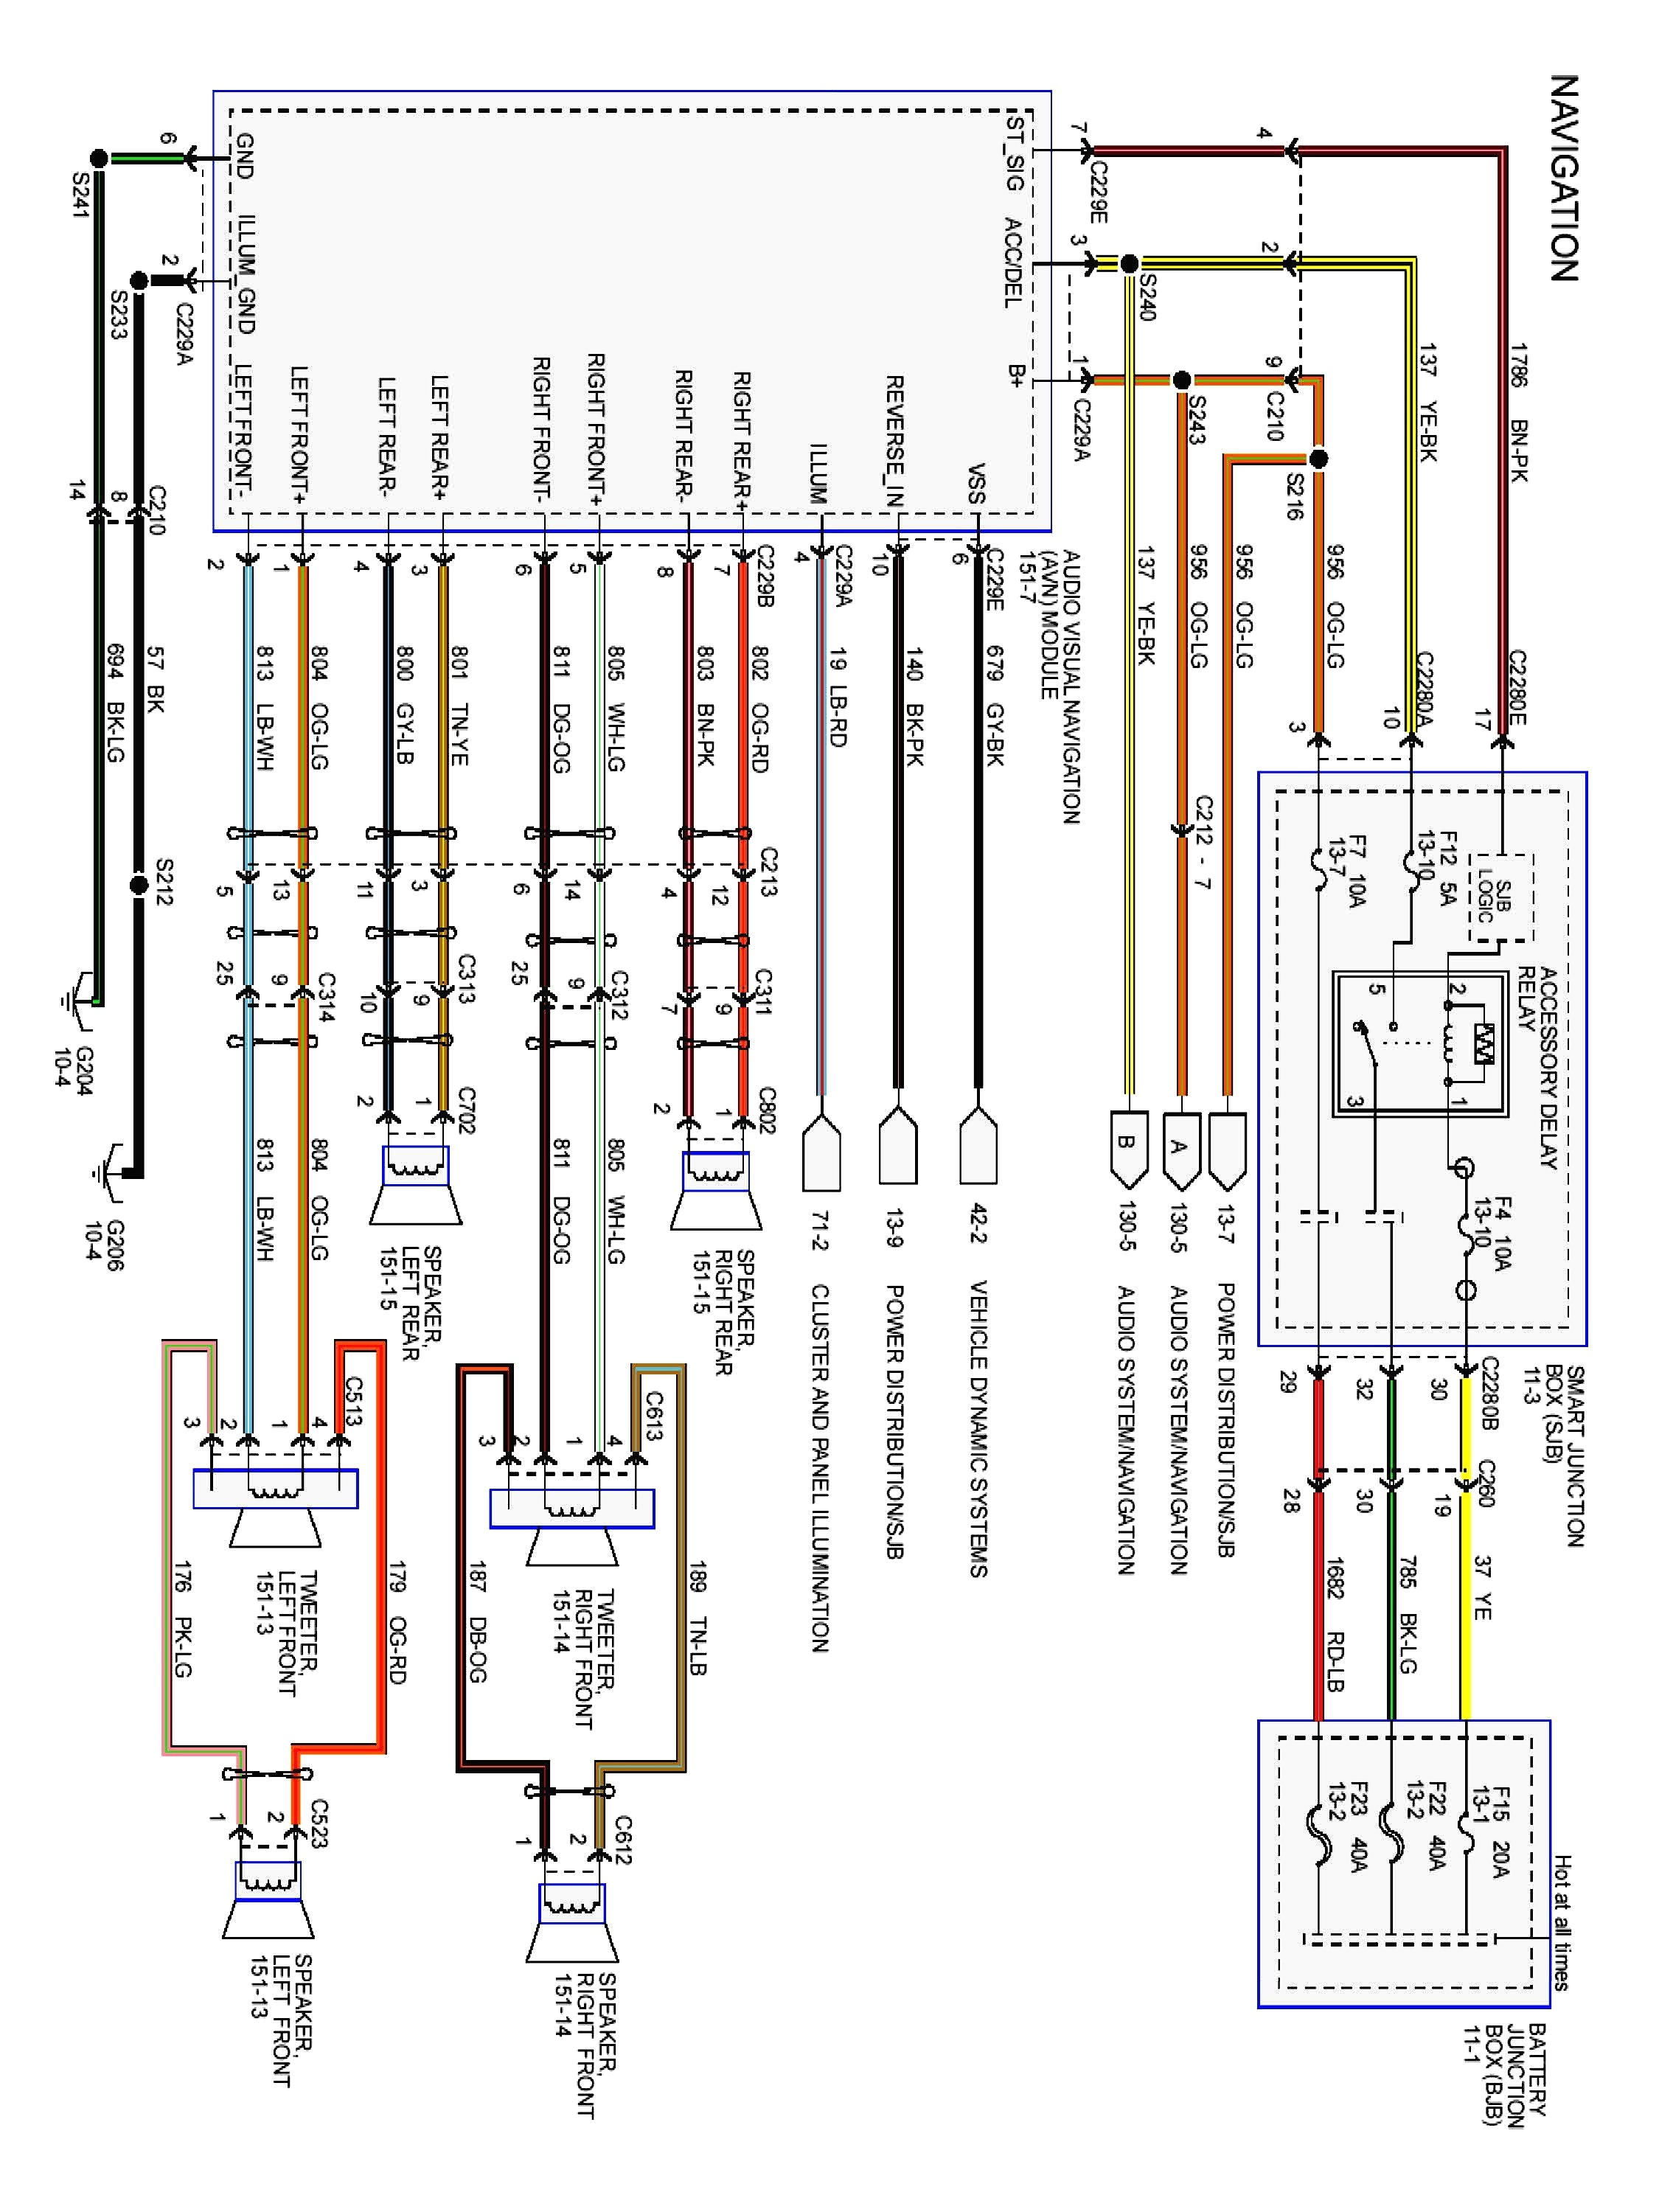 ford expedition wiring schematic - wiring diagram faith-alternator -  faith-alternator.lasuiteclub.it  lasuiteclub.it